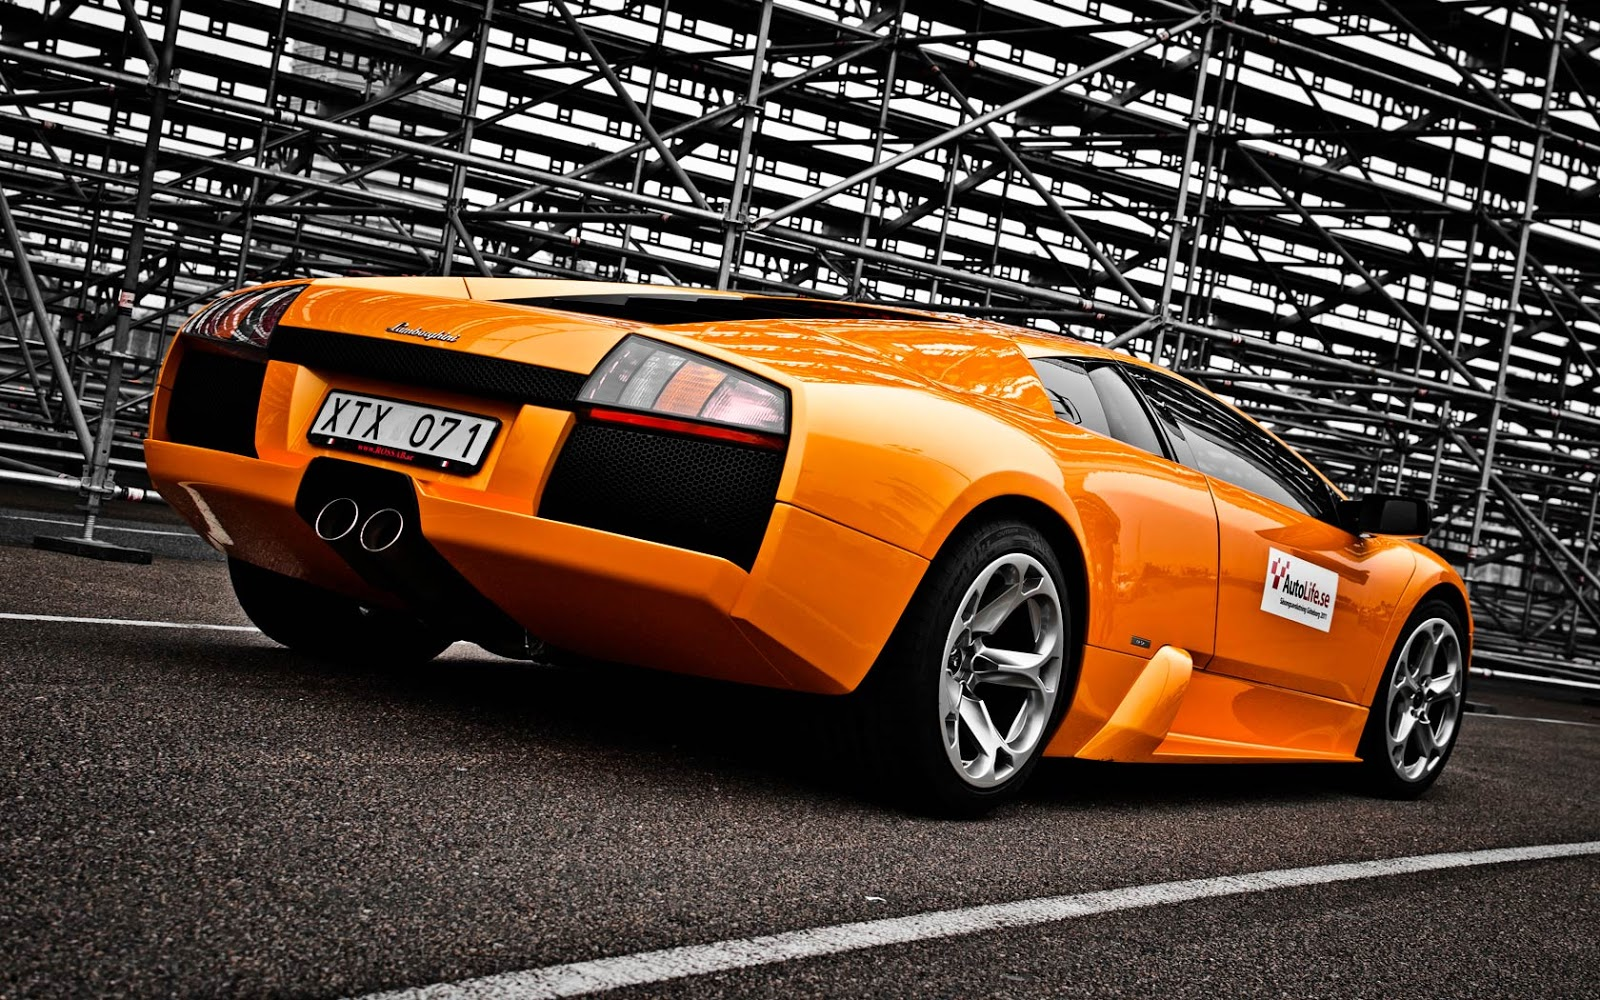 lamborghini-reventon-orange-sport-wallpaper